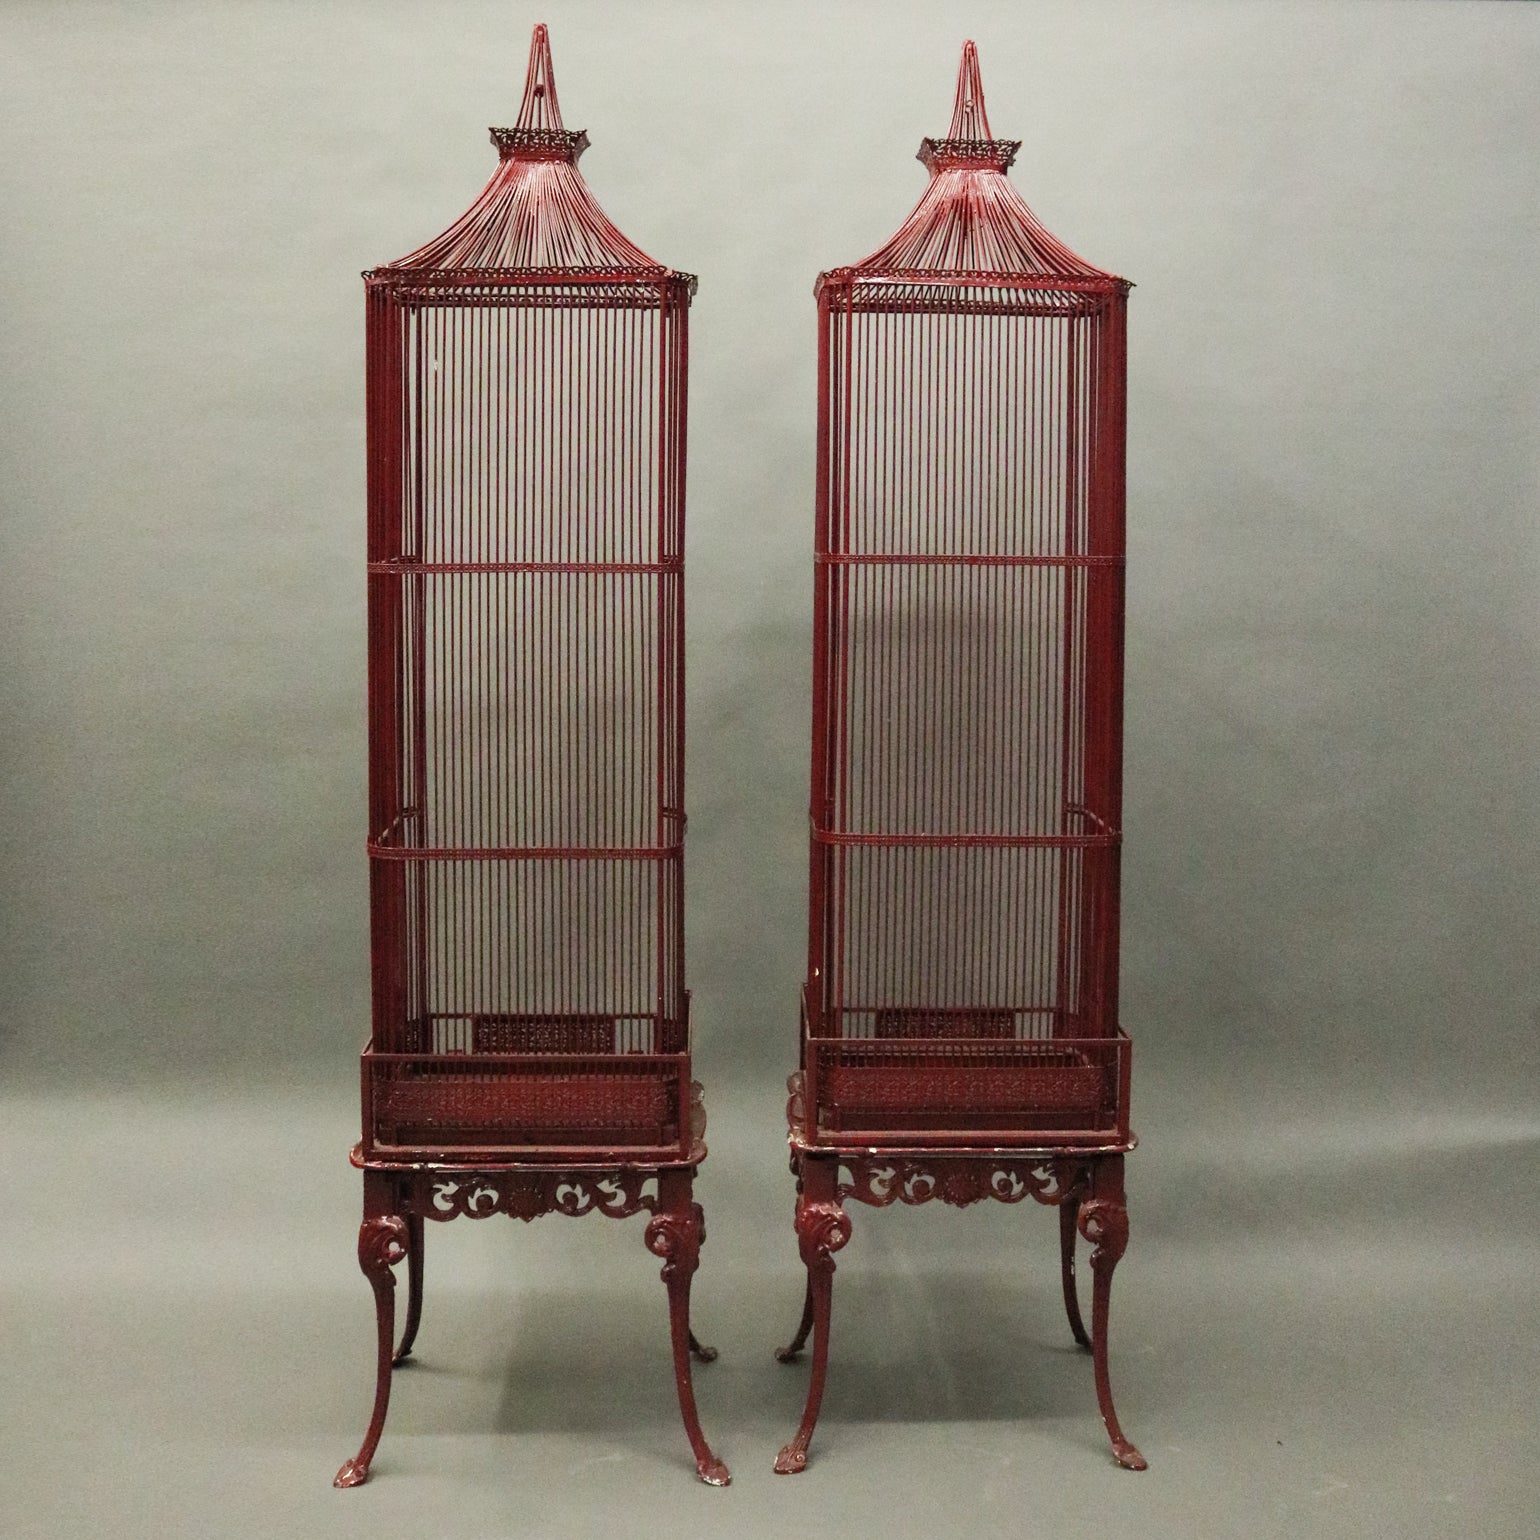 Pair Of Vintage French Chinoiserie Pagoda Bird Cage Display Cabinets,